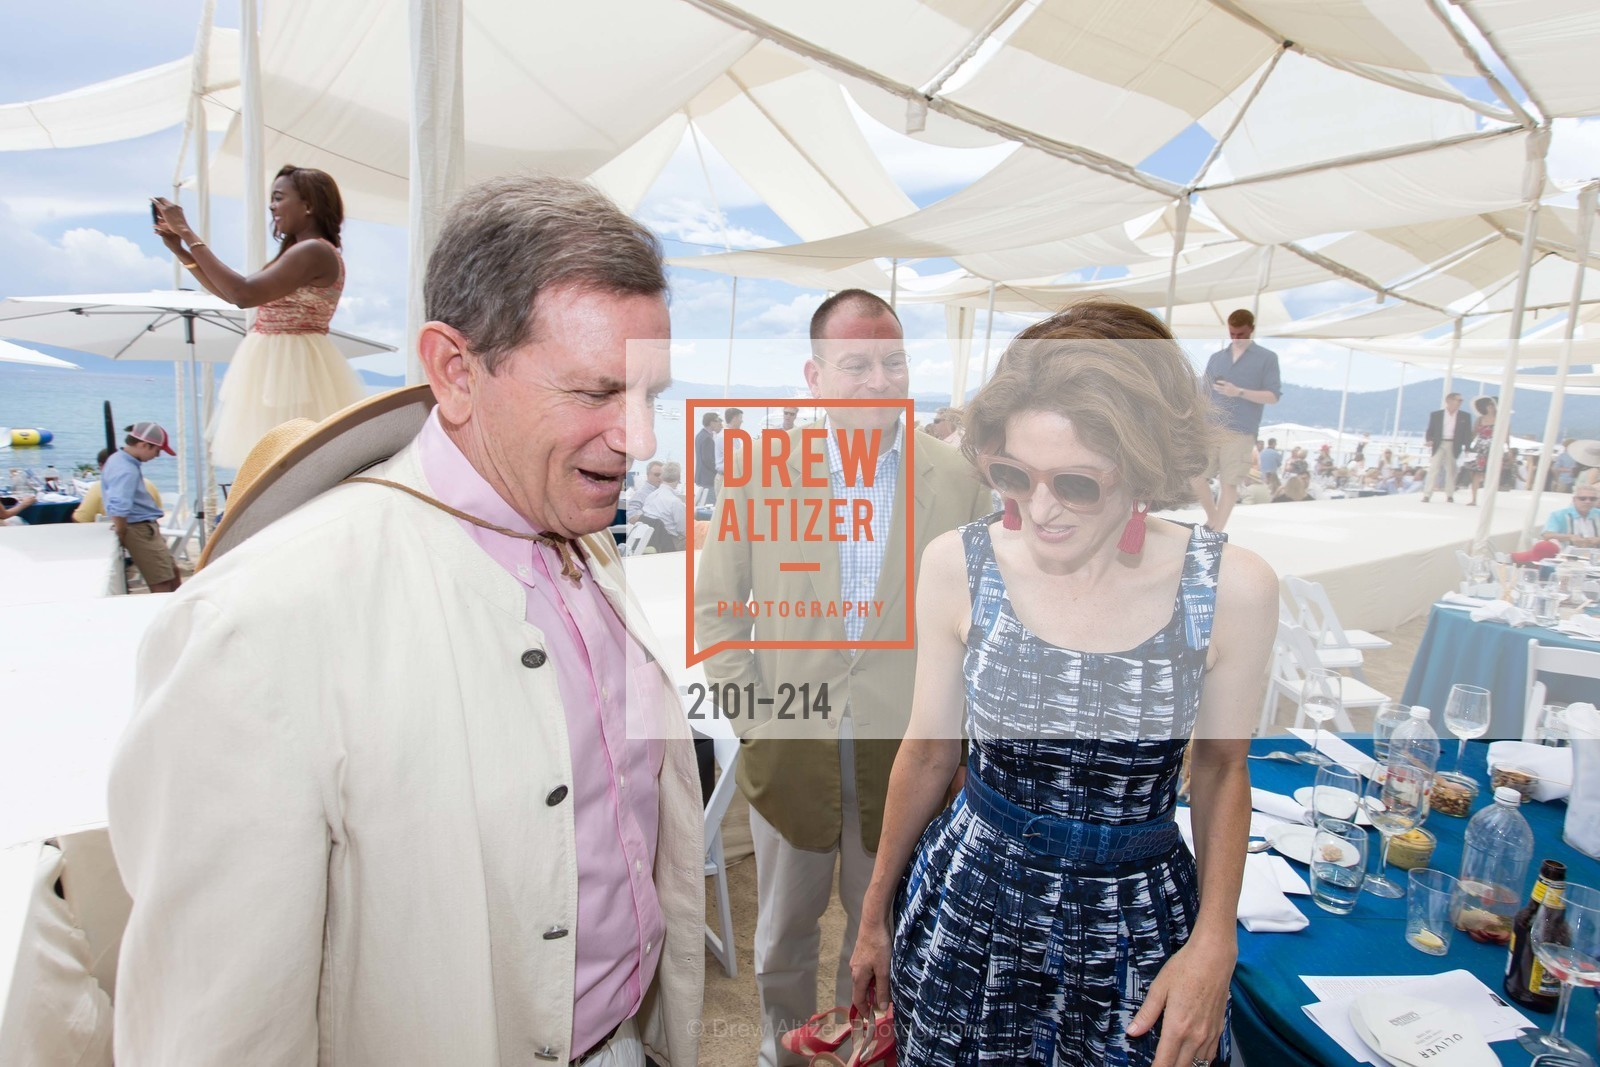 Joe Tobin, Eliza Bolen, Saks Fifth Avenue and The League to Save Lake Tahoe Present Fashion on the Lake, Private Residence, August 1st, 2015,Drew Altizer, Drew Altizer Photography, full-service agency, private events, San Francisco photographer, photographer california